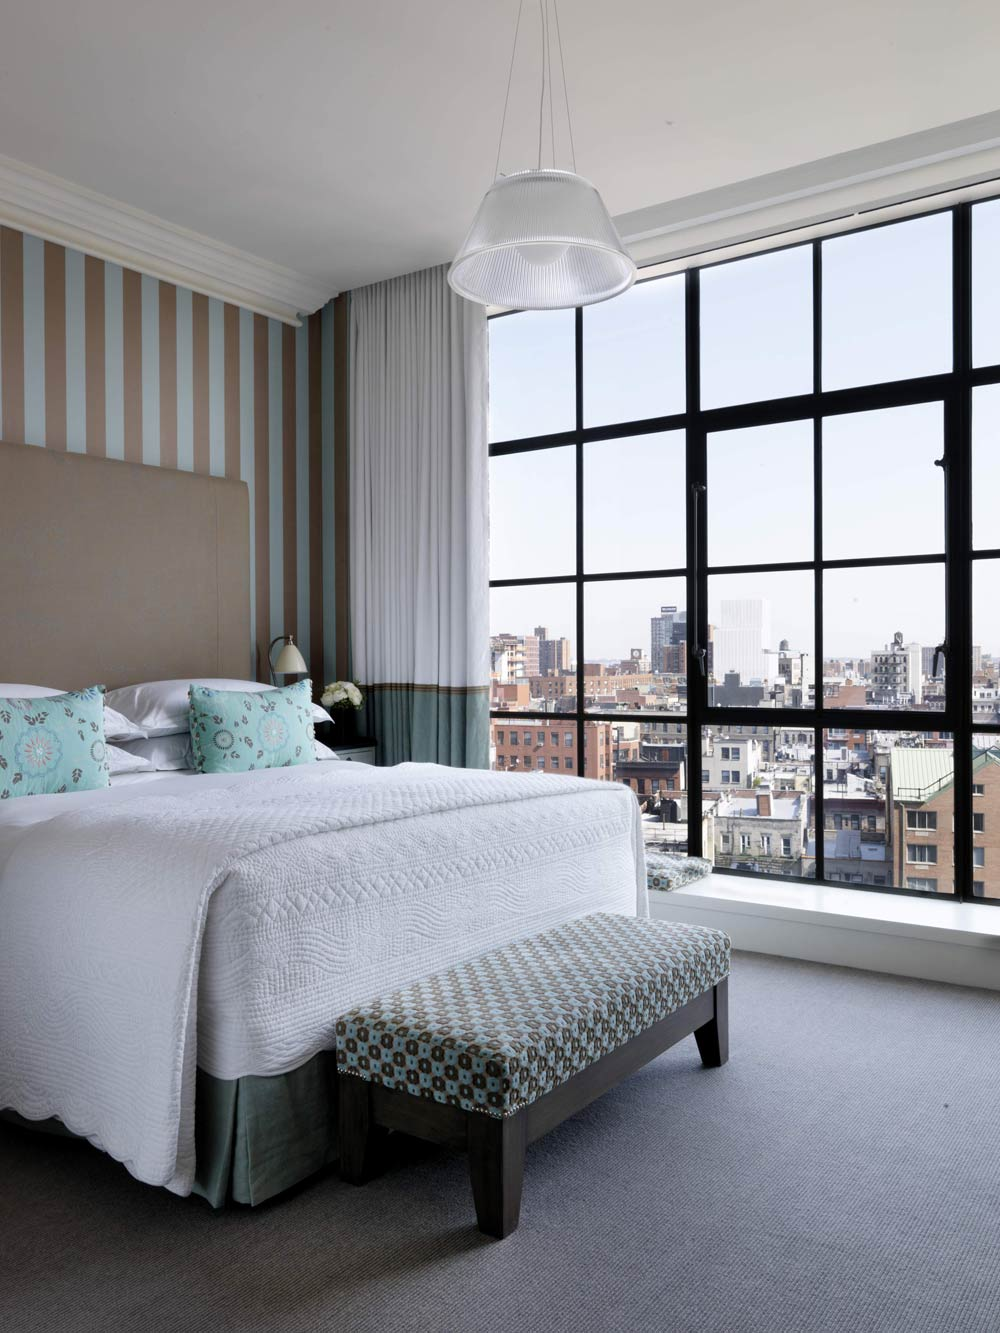 Guestroom at Crosby Street Hotel, New York